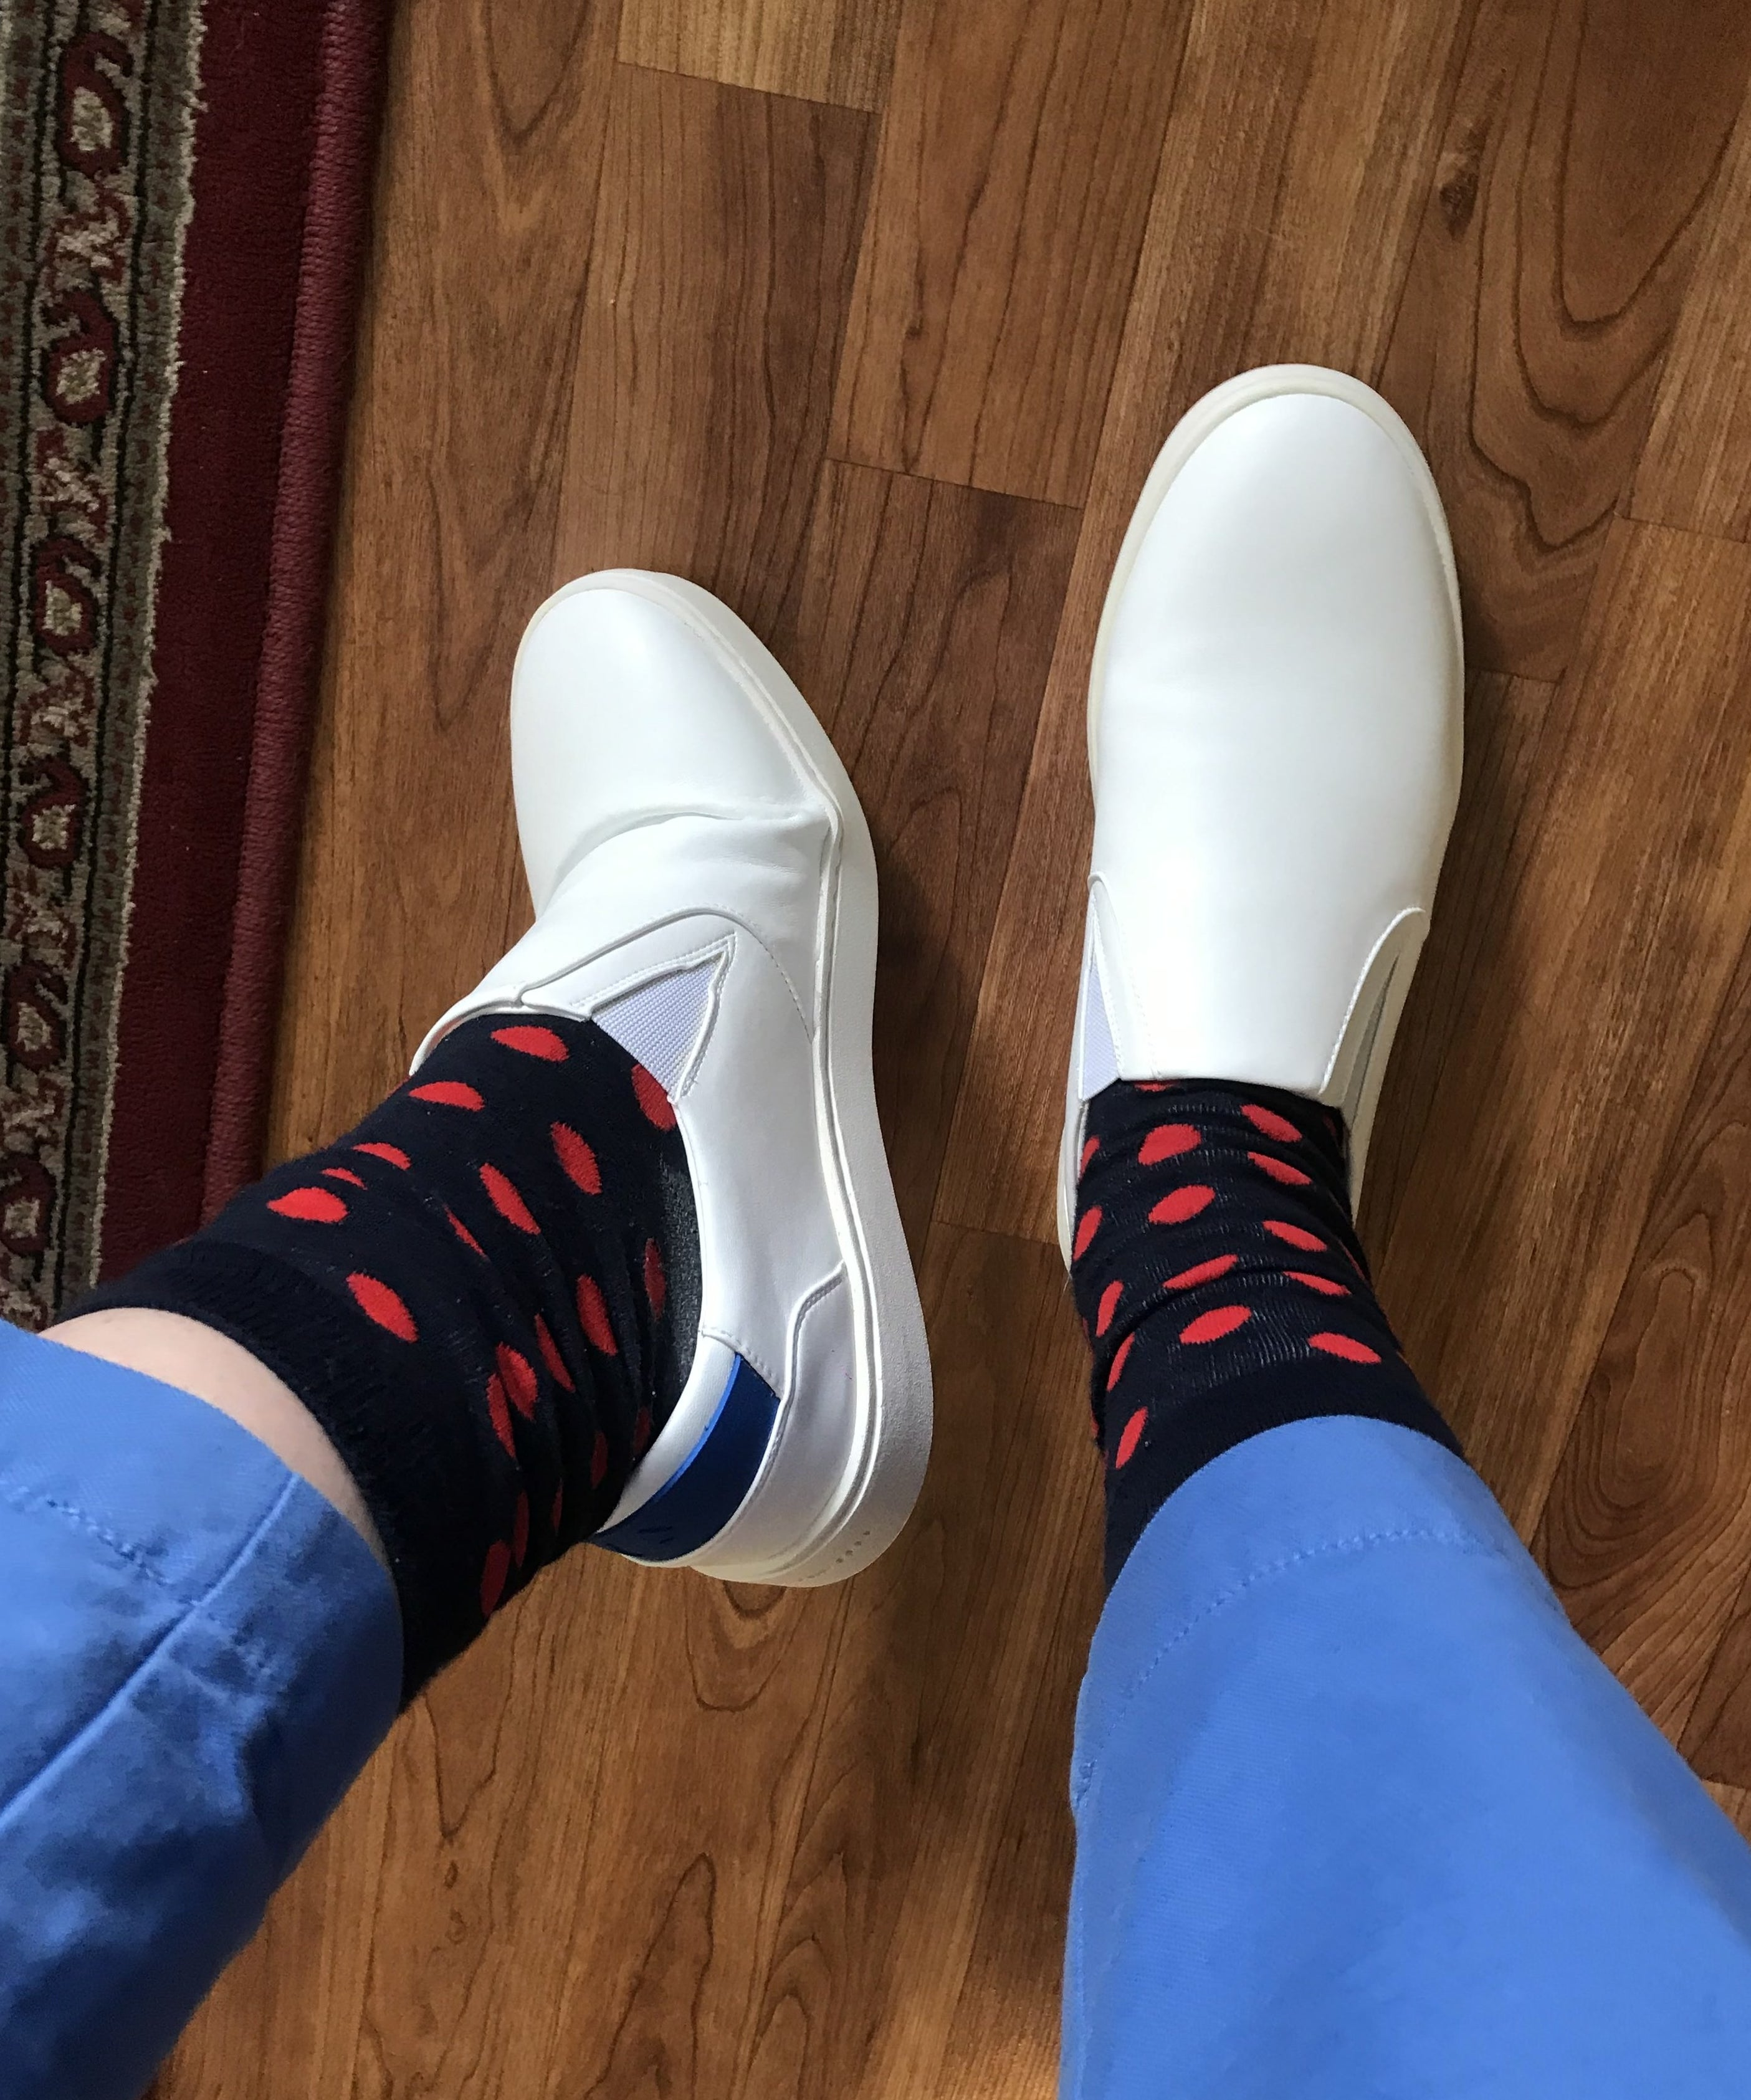 writer's crisp white slip-ons with blue detail on the heel, paired with blue and red polkadot socks